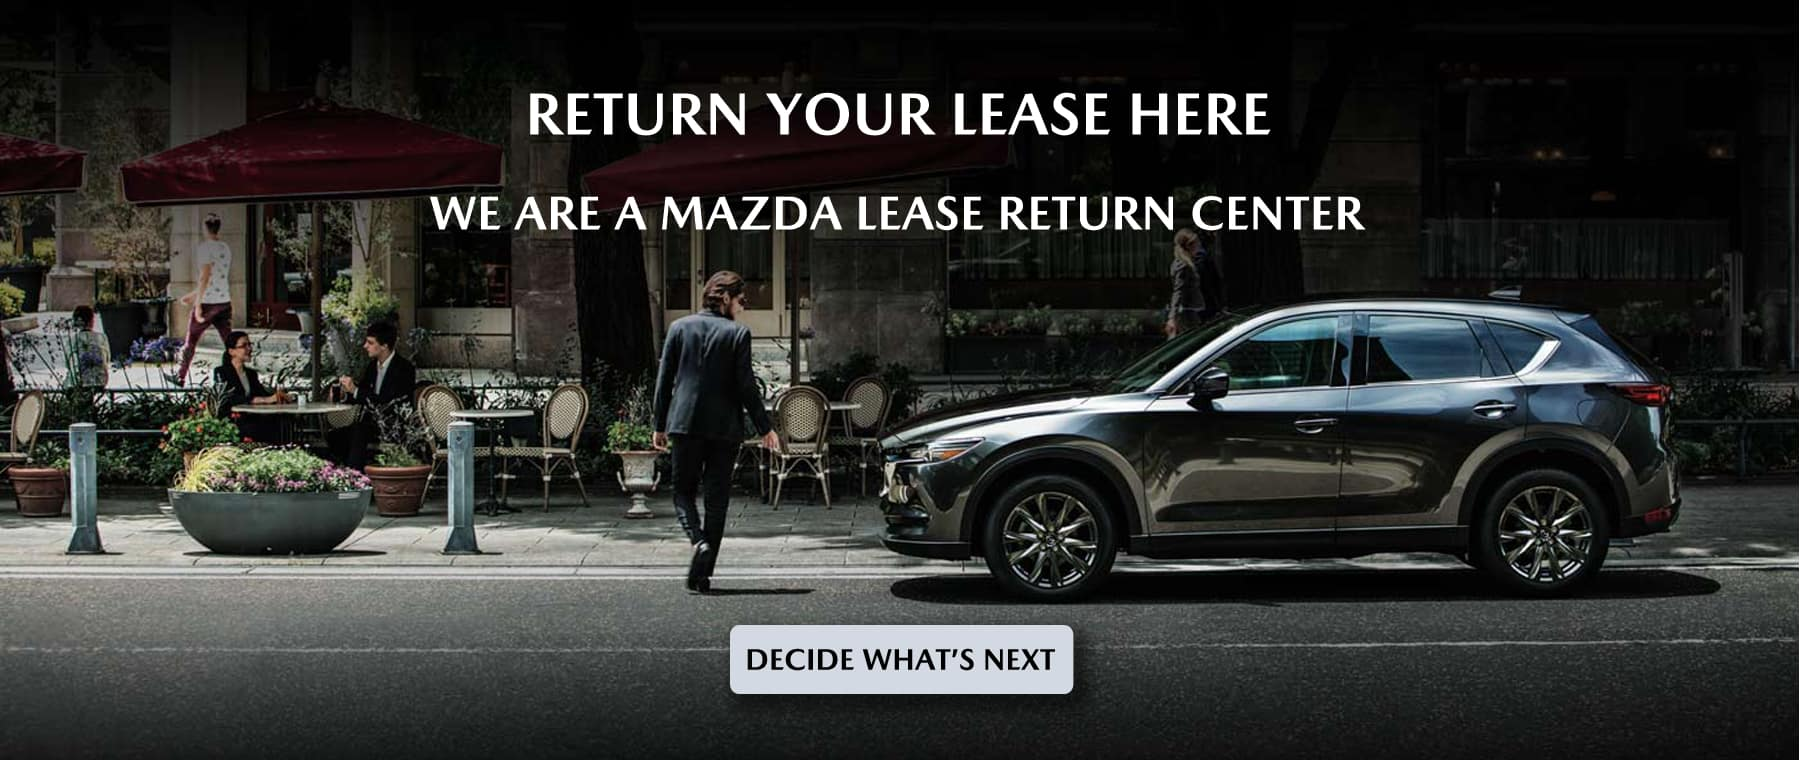 2020_Mazda_Return_Lease